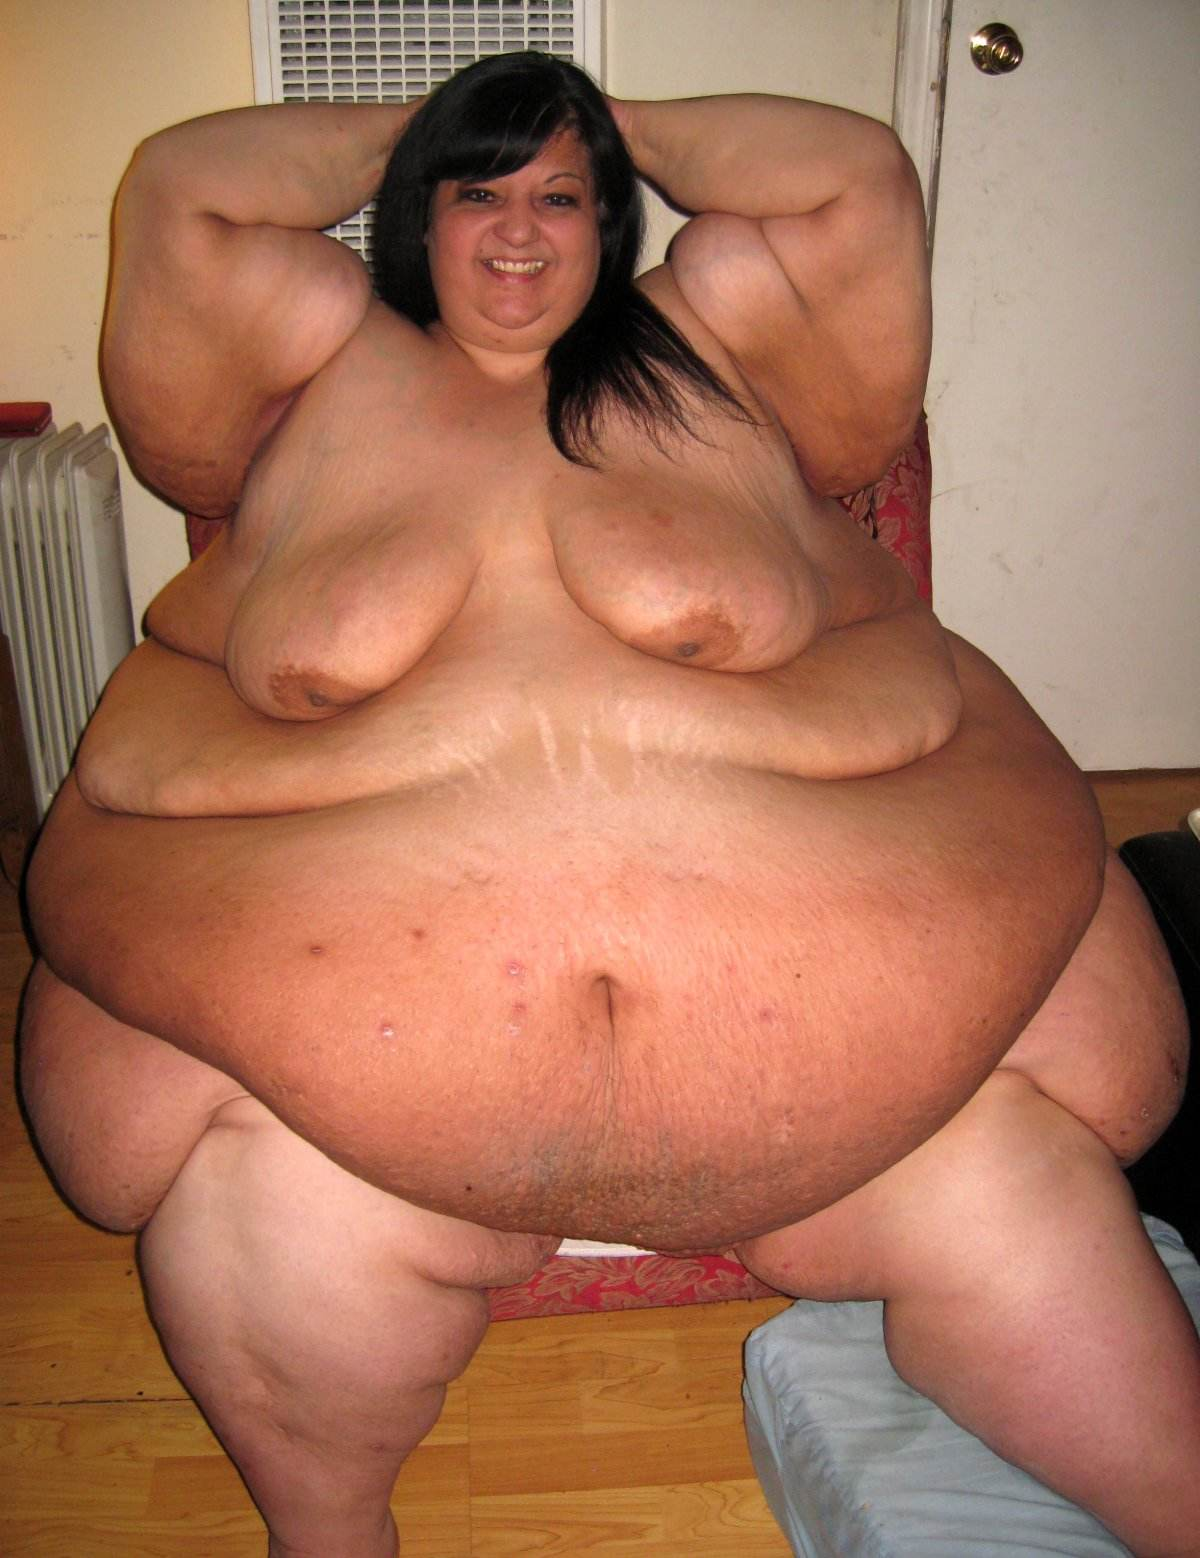 Fat Belly Woman porn pic consider, that